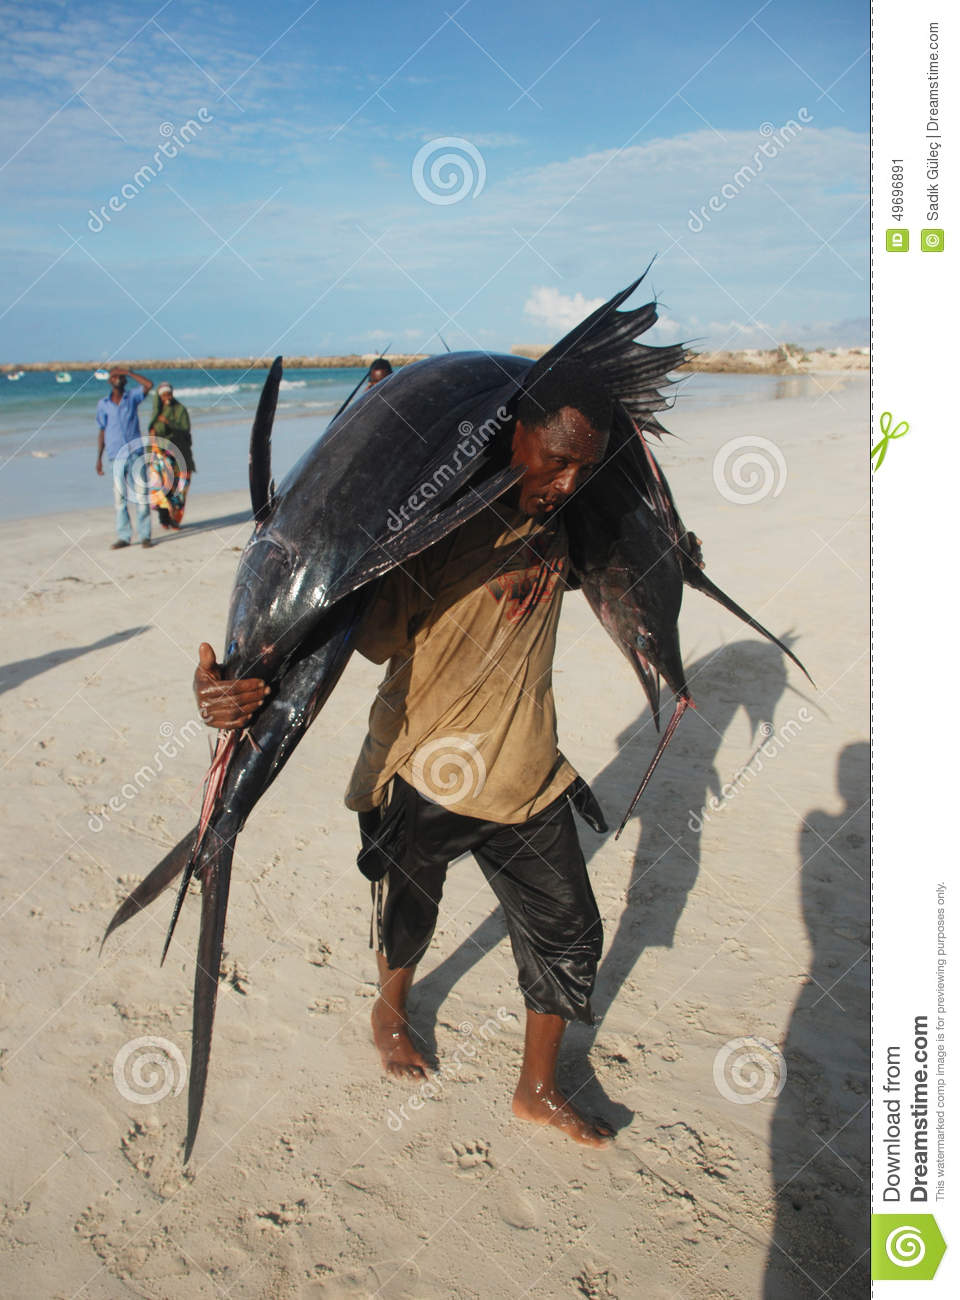 Fisherman in Somalia